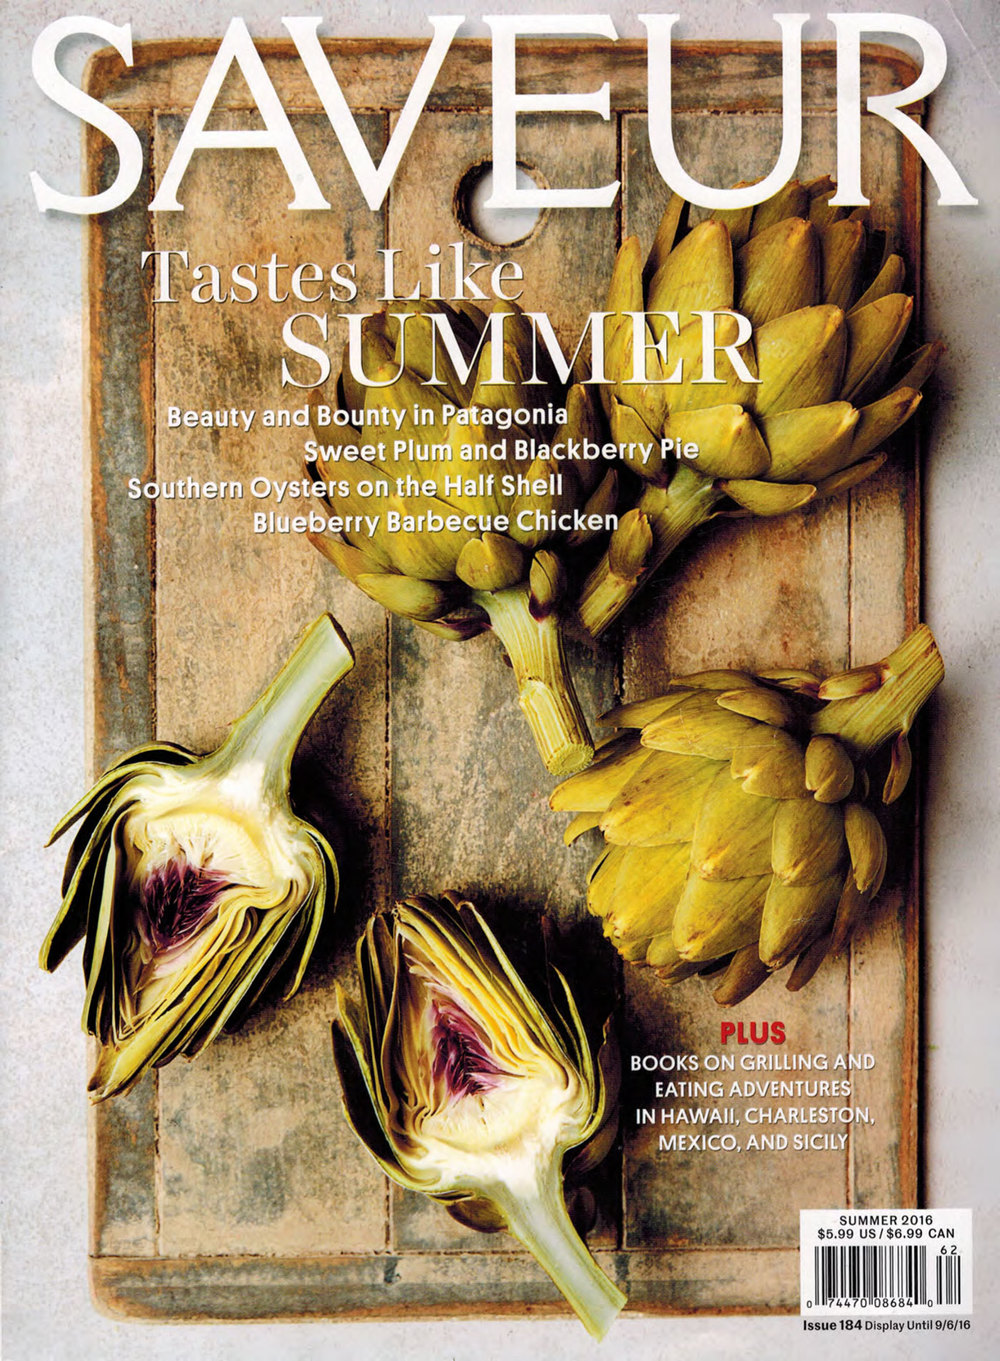 Saveur Magazine feature on Patagonia